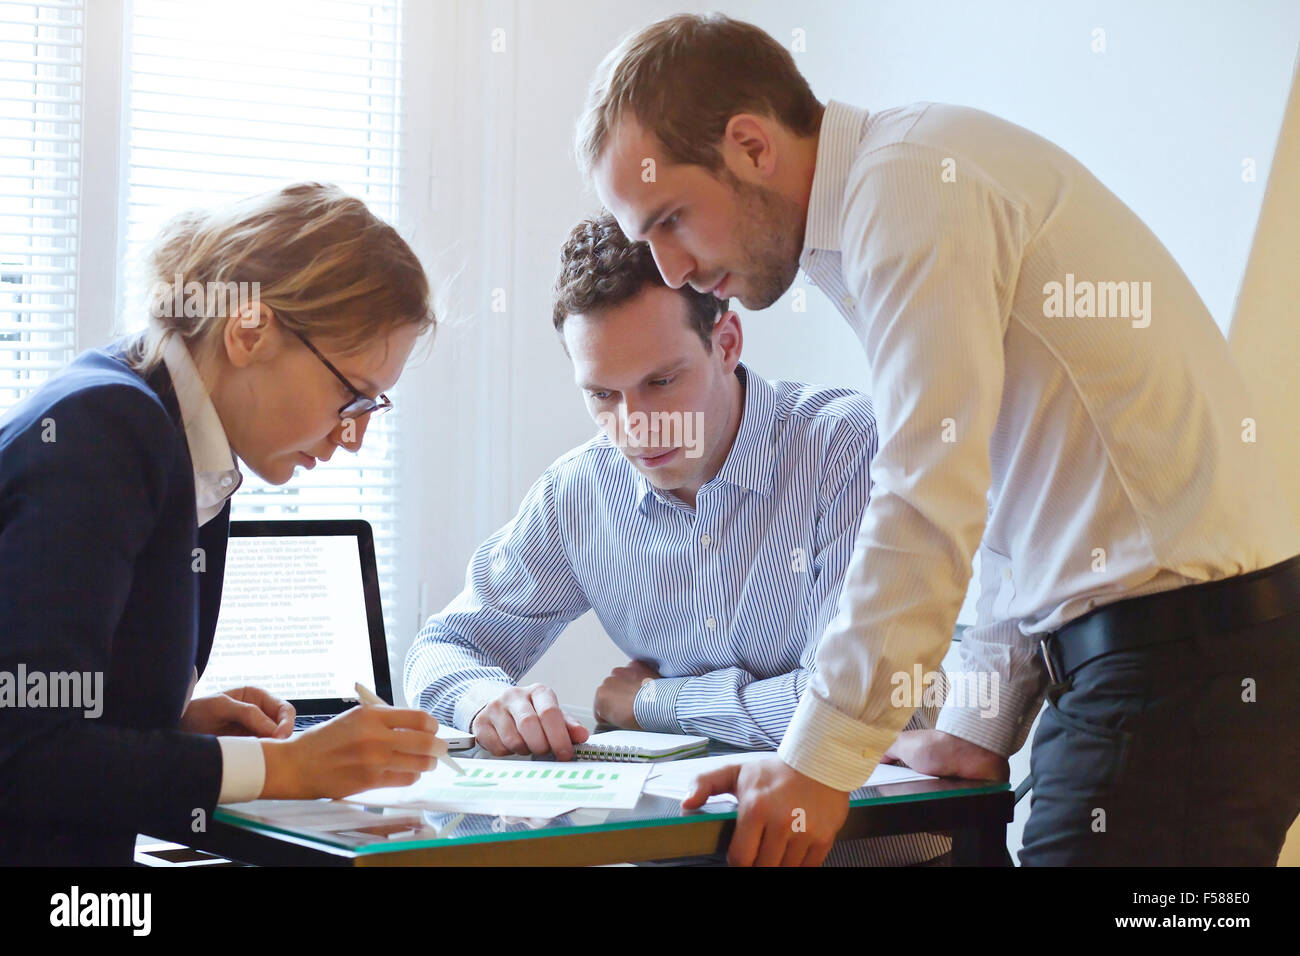 business team working on a project - Stock Image